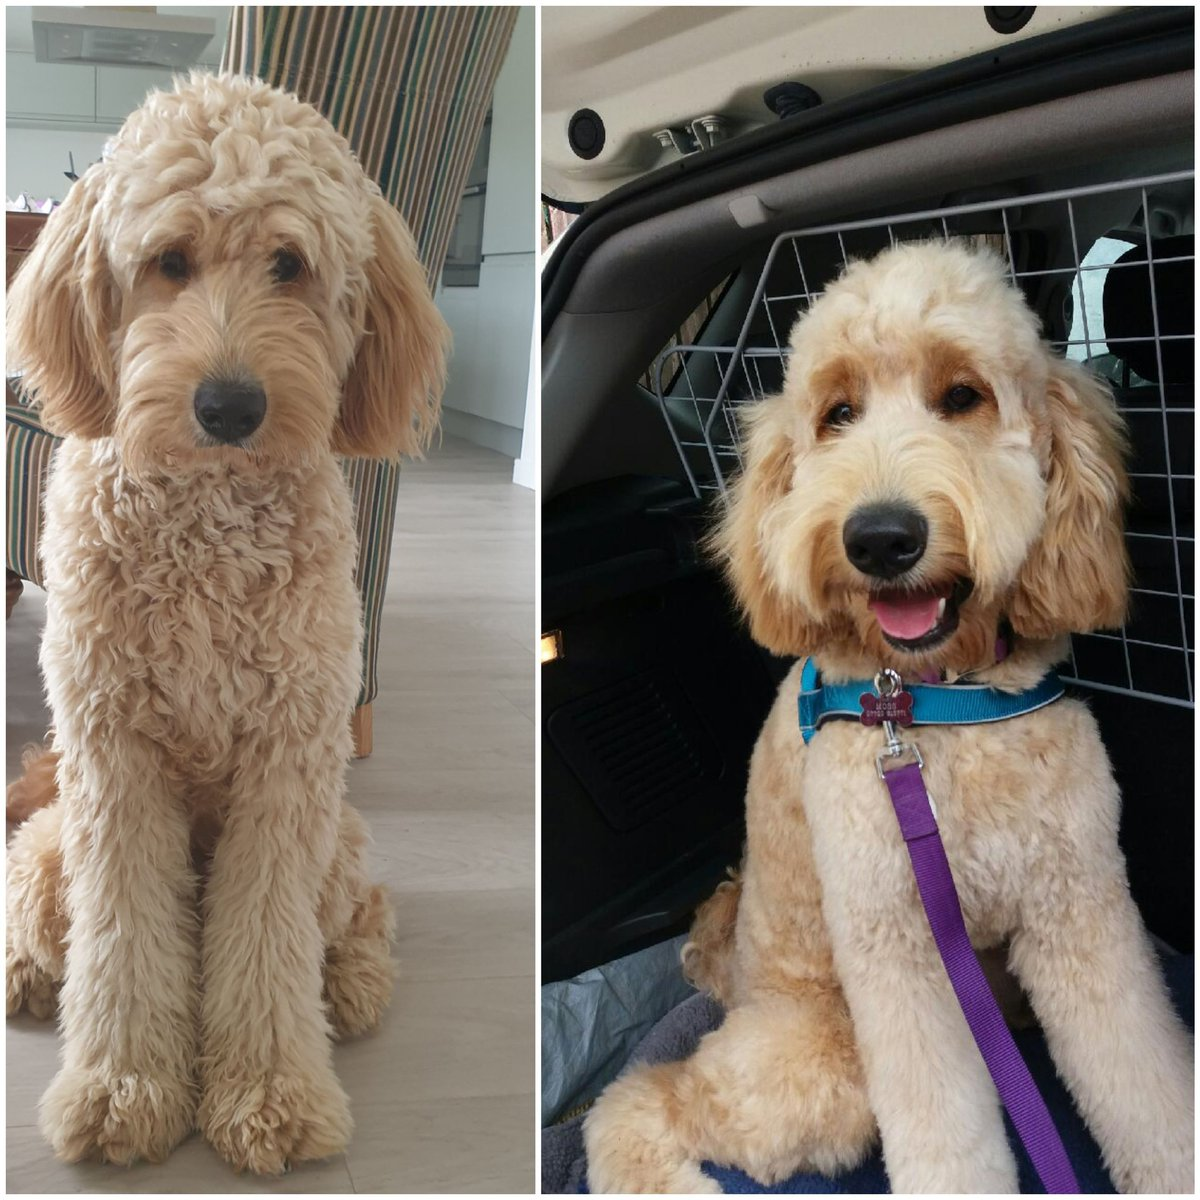 """Good evening everyone, I hope you are all safe and well? I am smelling """"lovely"""" according to Her Indoors but I had to have a good roll on the grass as soon as we got back from the groomers to smell more """"me""""  #BeforeAndAfter #stylish #SaturdayVibes #StayAtHomeSaveLivespic.twitter.com/XwS7fxFglU"""